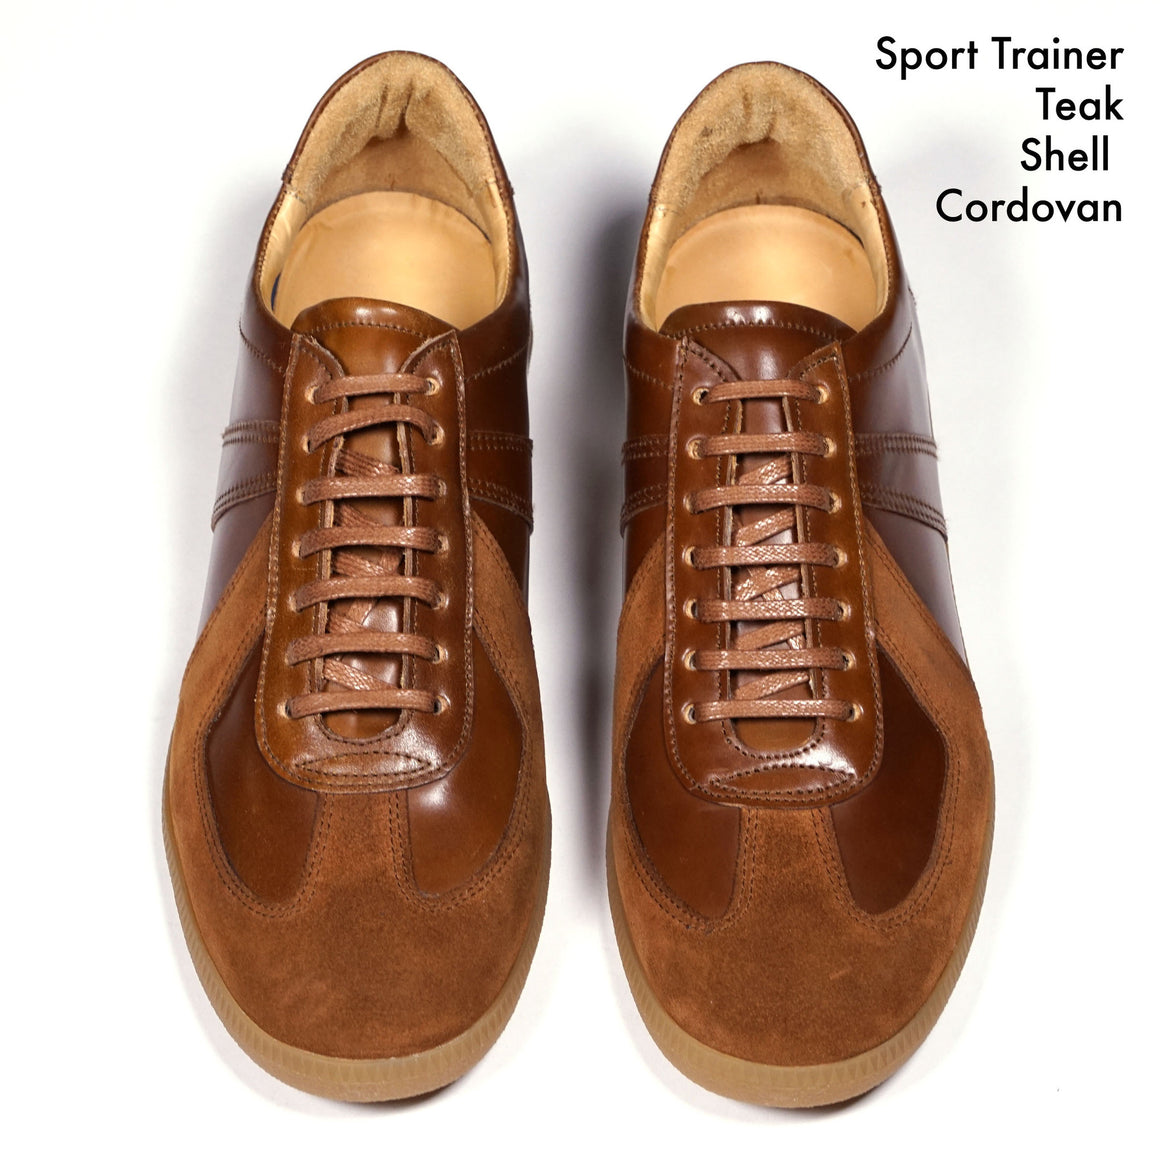 Genuine Shell Cordovan Trainer Pre-Order November 2015